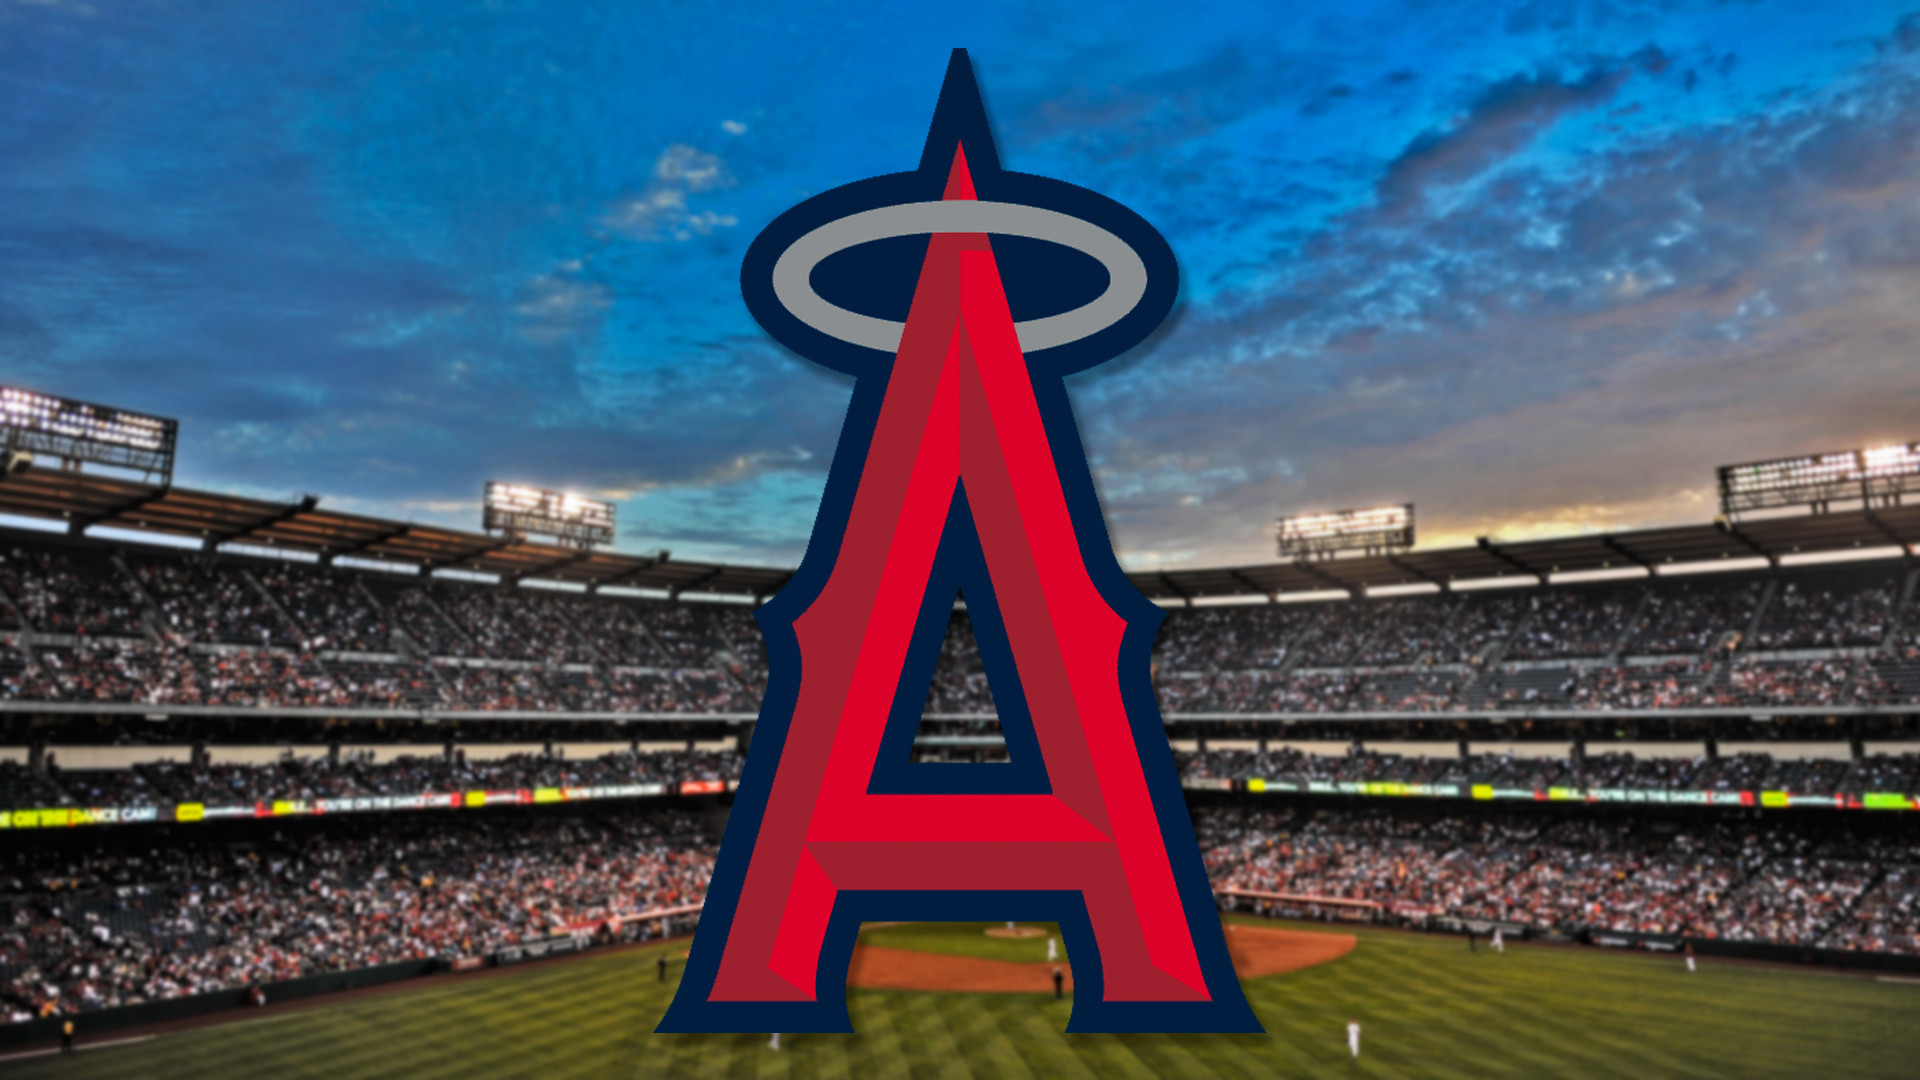 1920x1080 - Los Angeles Angels of Anaheim Wallpapers 18